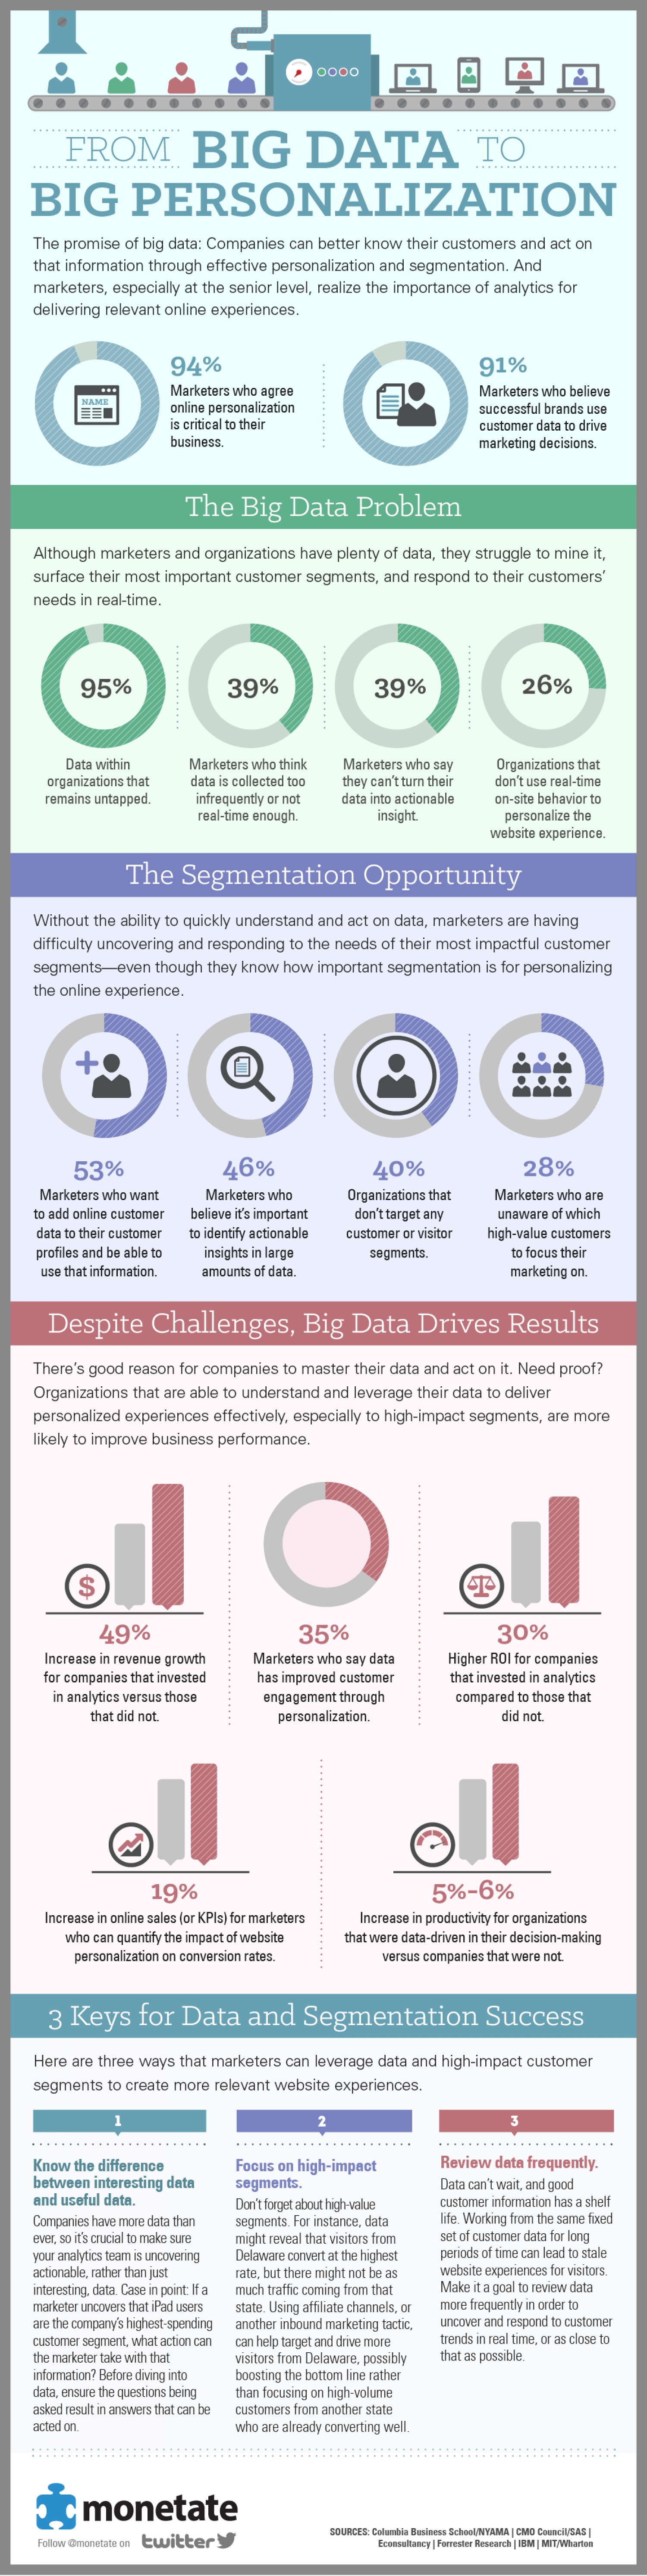 From Big Data To Big Personalization Infographic